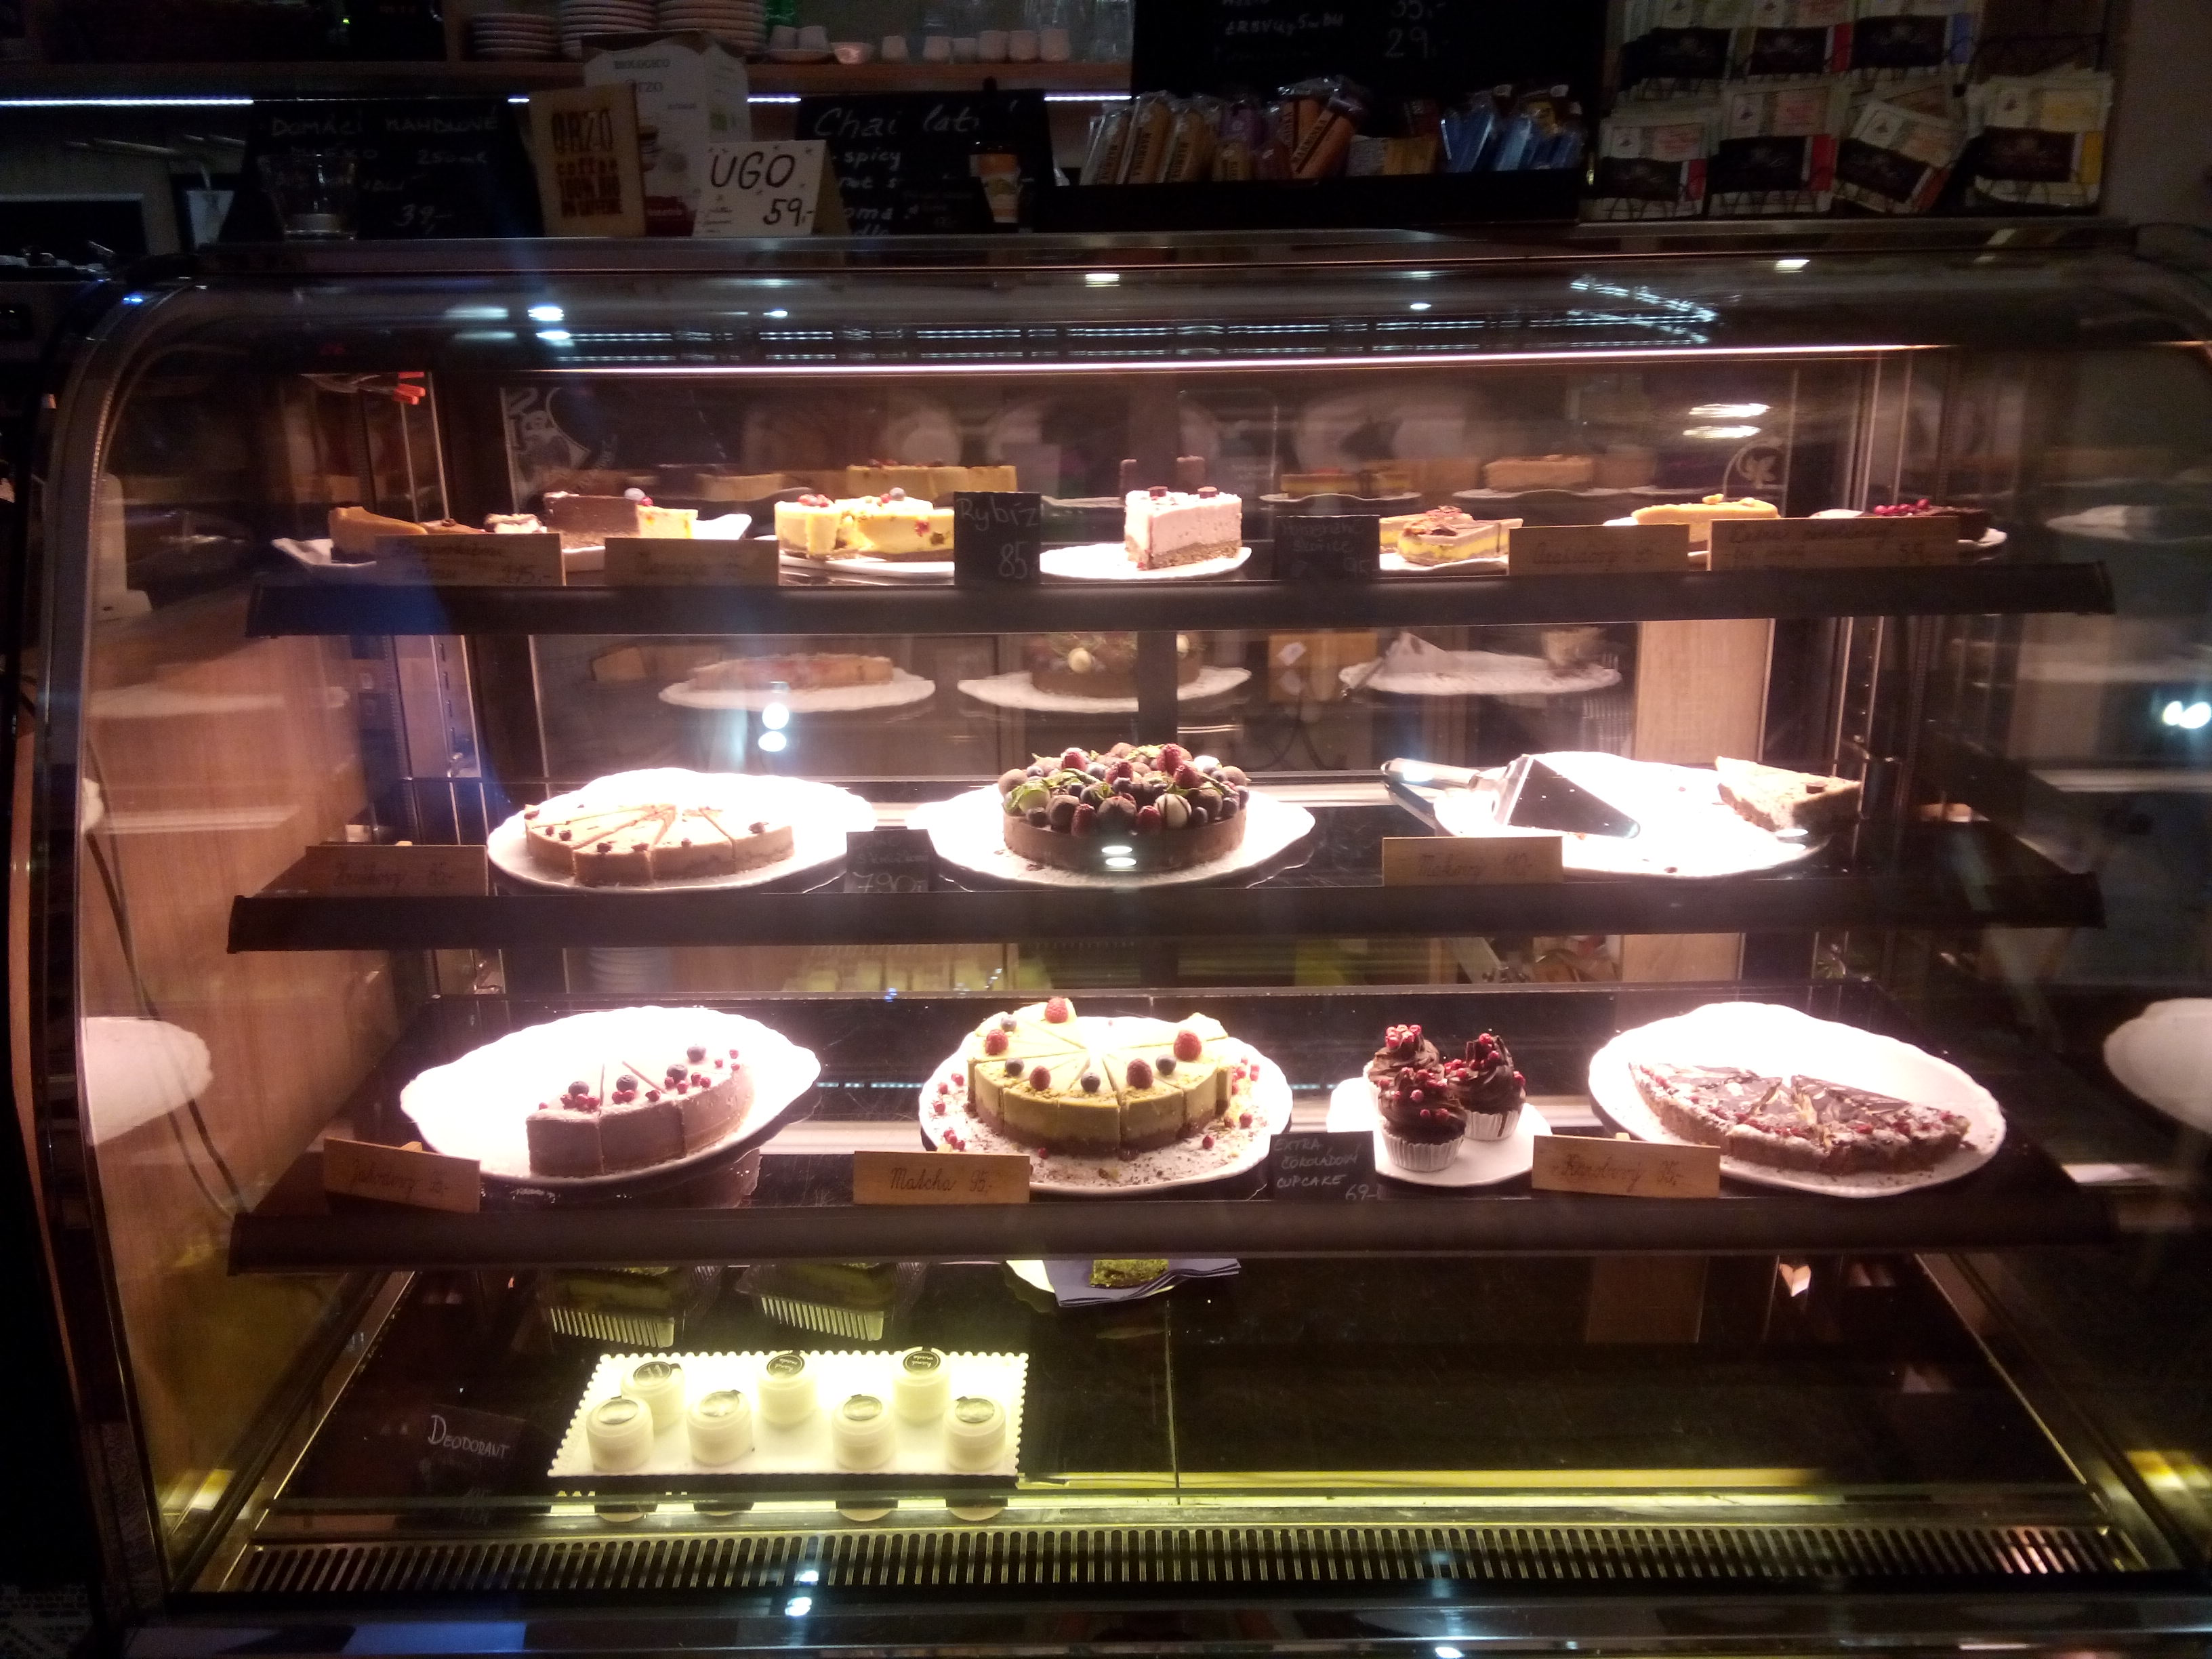 A counter with four shelves full of cakes, dramatically lit